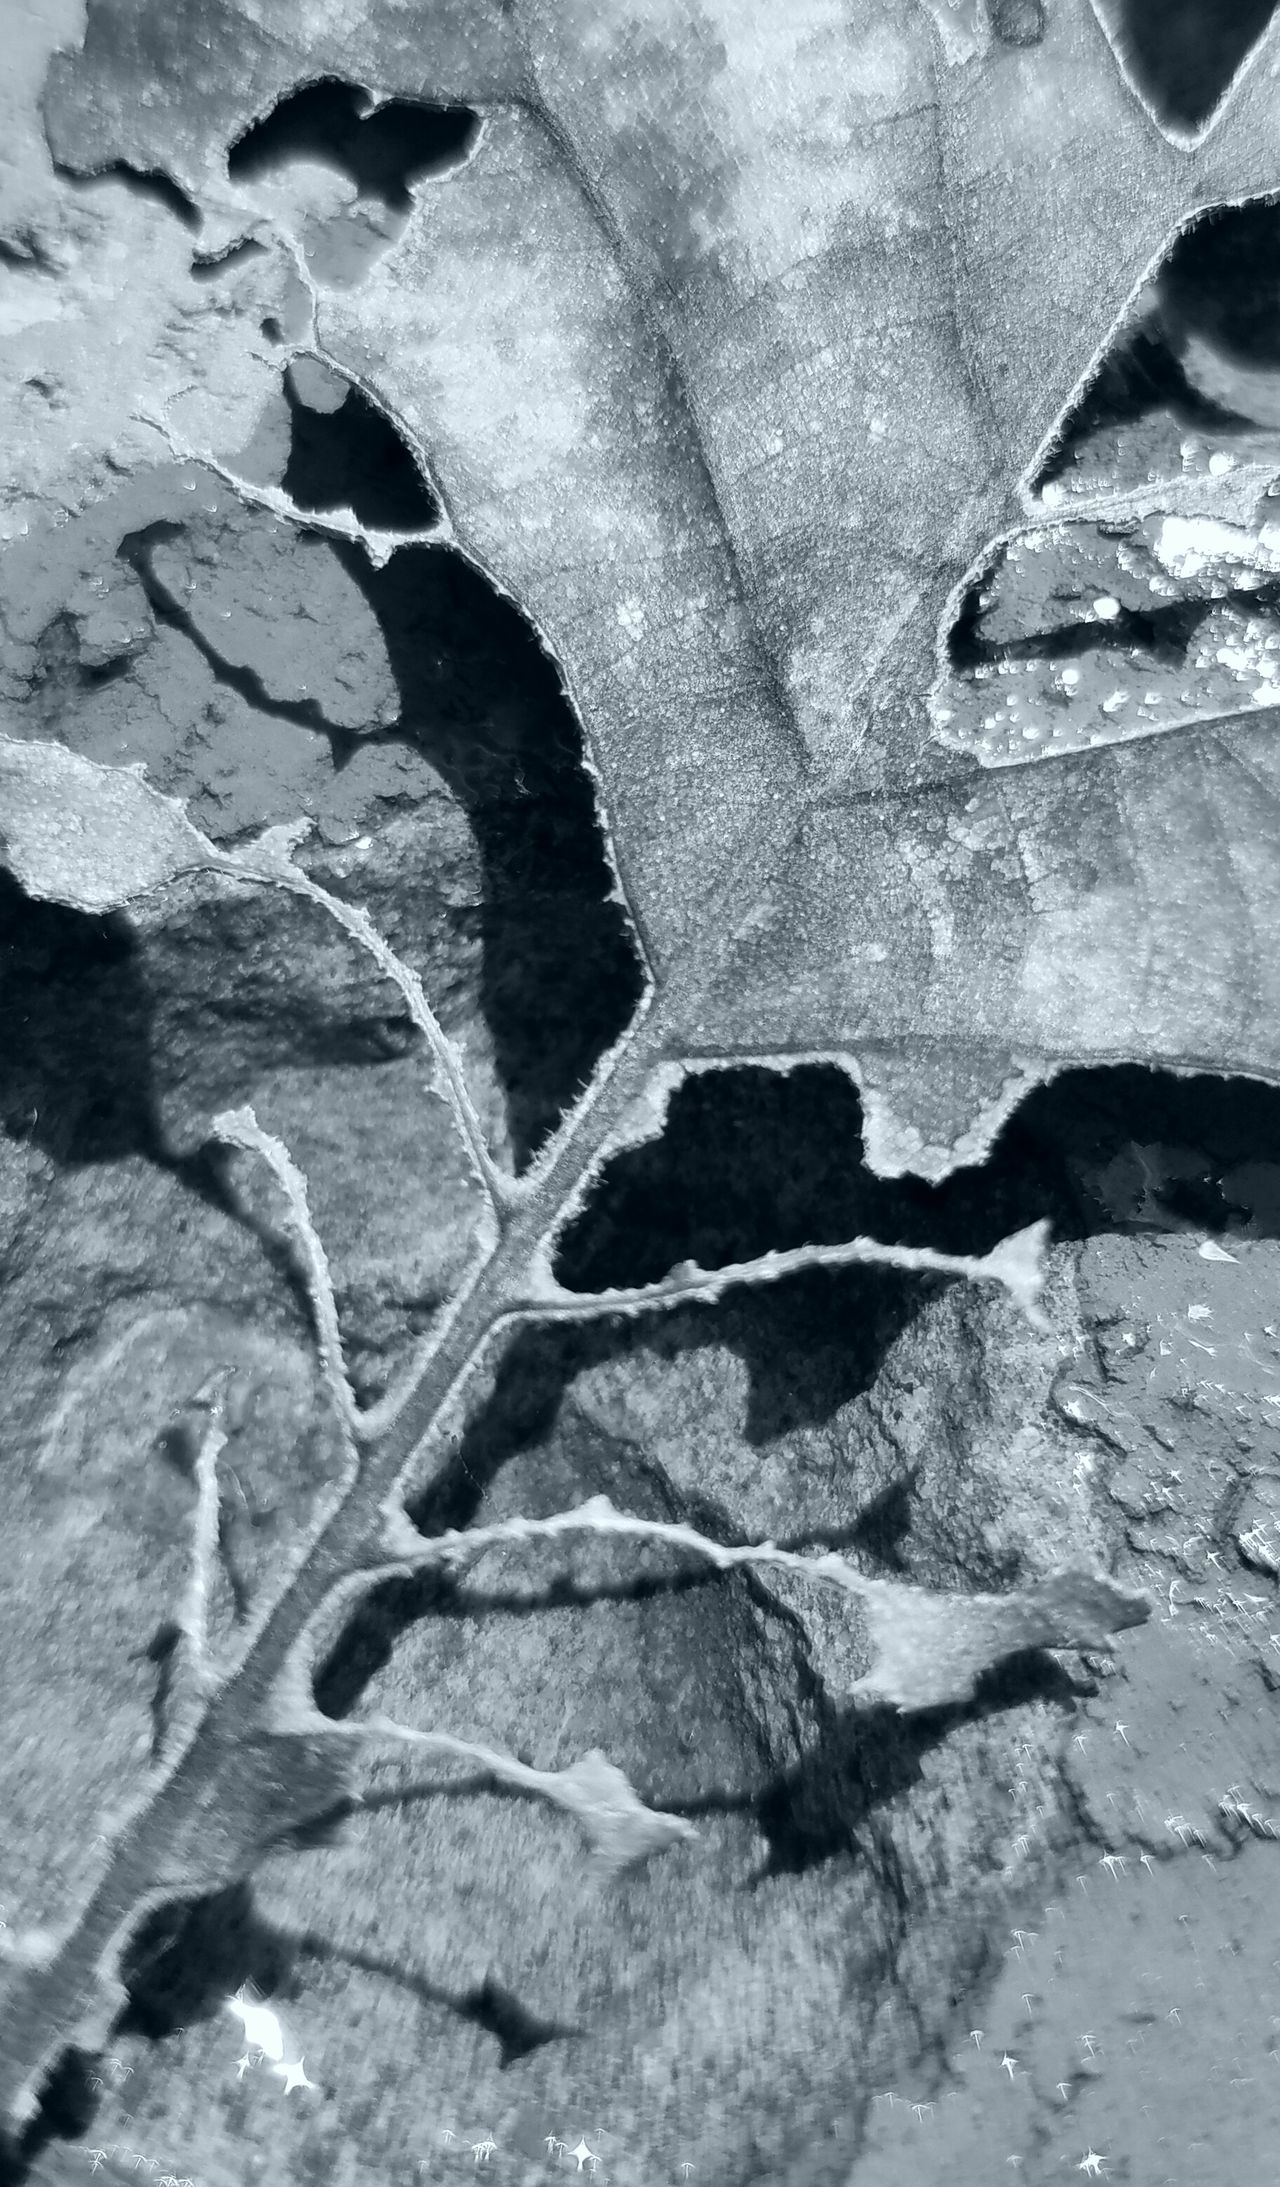 Abstract b&w Close-up Backgrounds Full Frame Fragility Plant Nature Outdoors Growth Day Concrete Botany Overhead View MUR B&W The Song Of Light Monochrome Photography Break The Mold Art Is Everywhere Cut And Paste